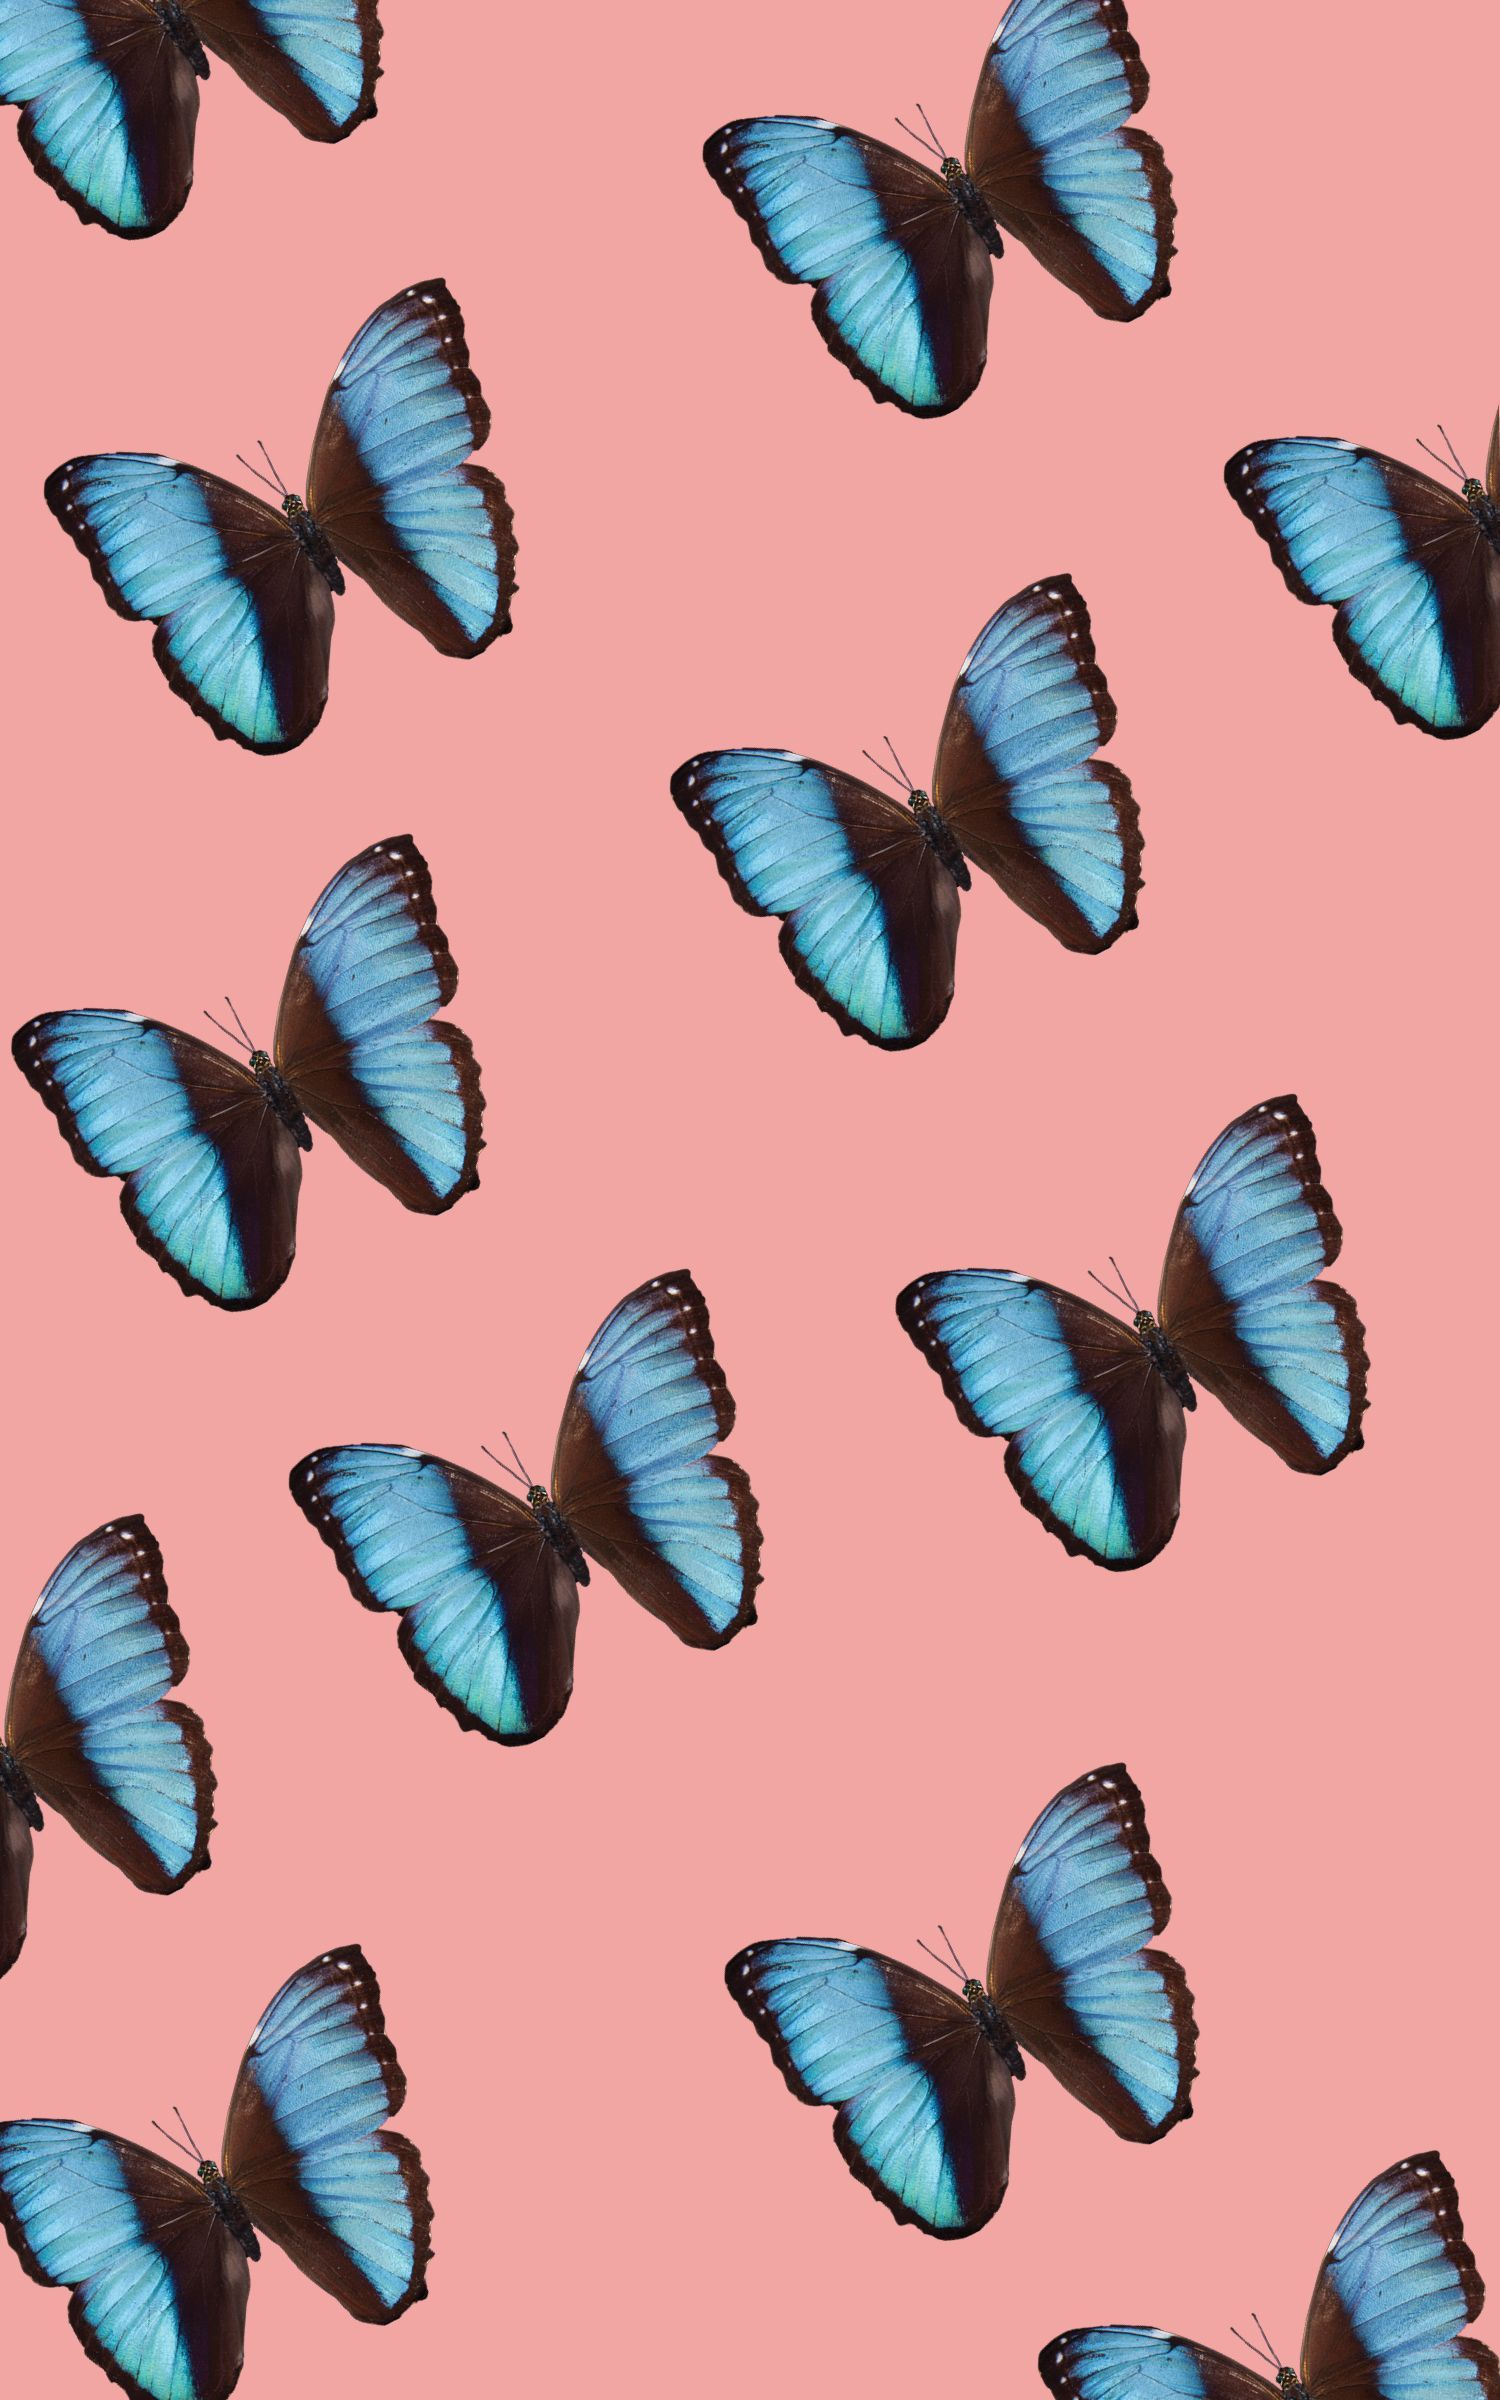 Aesthetic Blue Butterfly Wallpaper Vsco